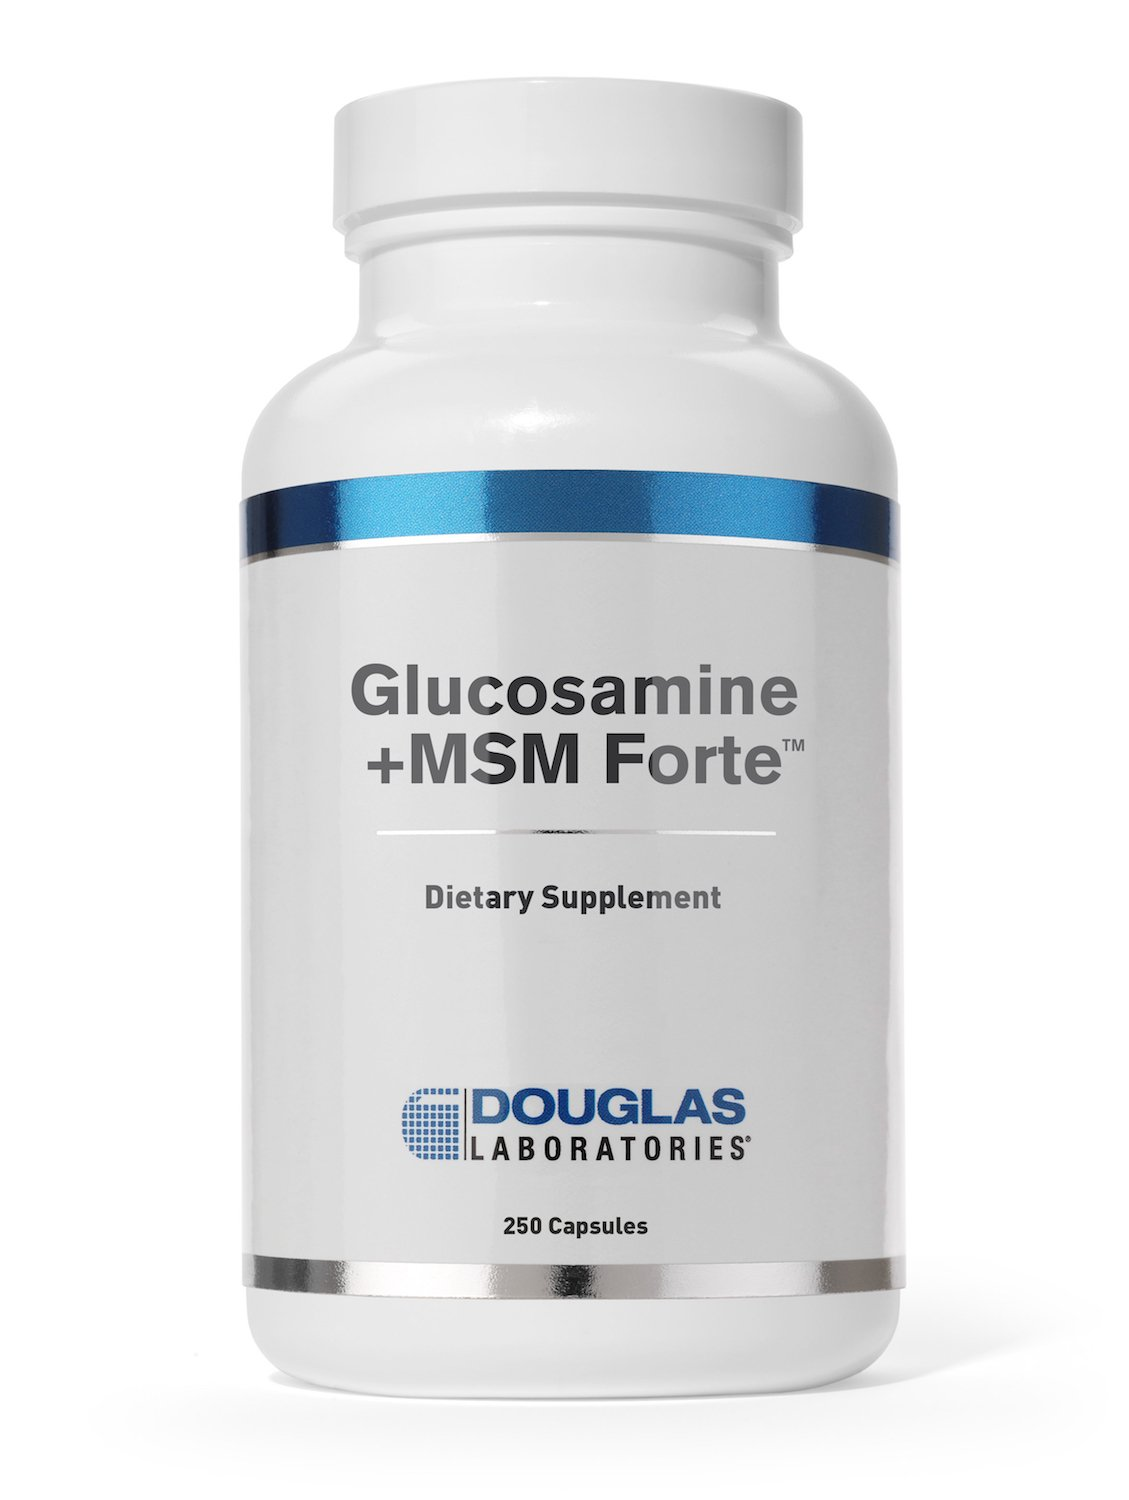 Douglas Laboratories - Glucosamine + MSM Forte - Nutritional Formulation to Support Maintainance and Health of Aging Joints* - 250 Capsules